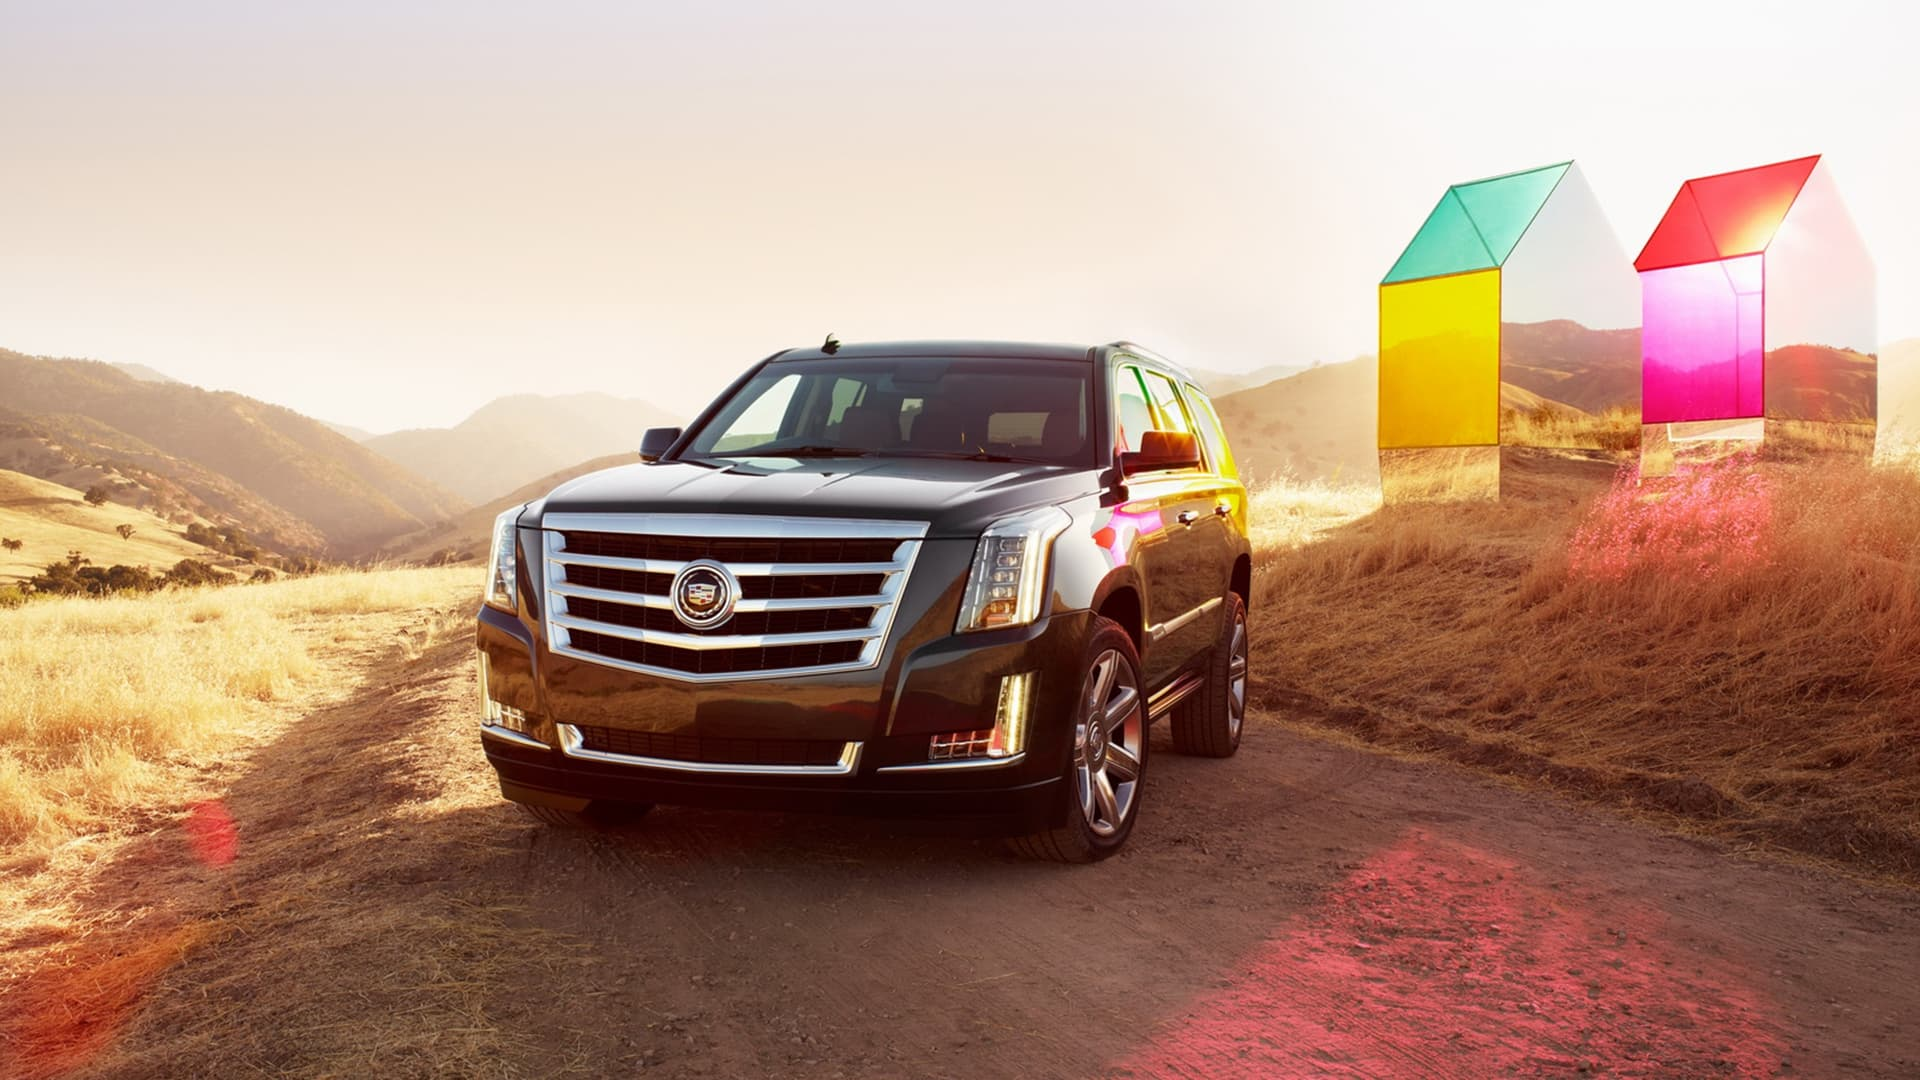 2016 Cadillac escalade front picture